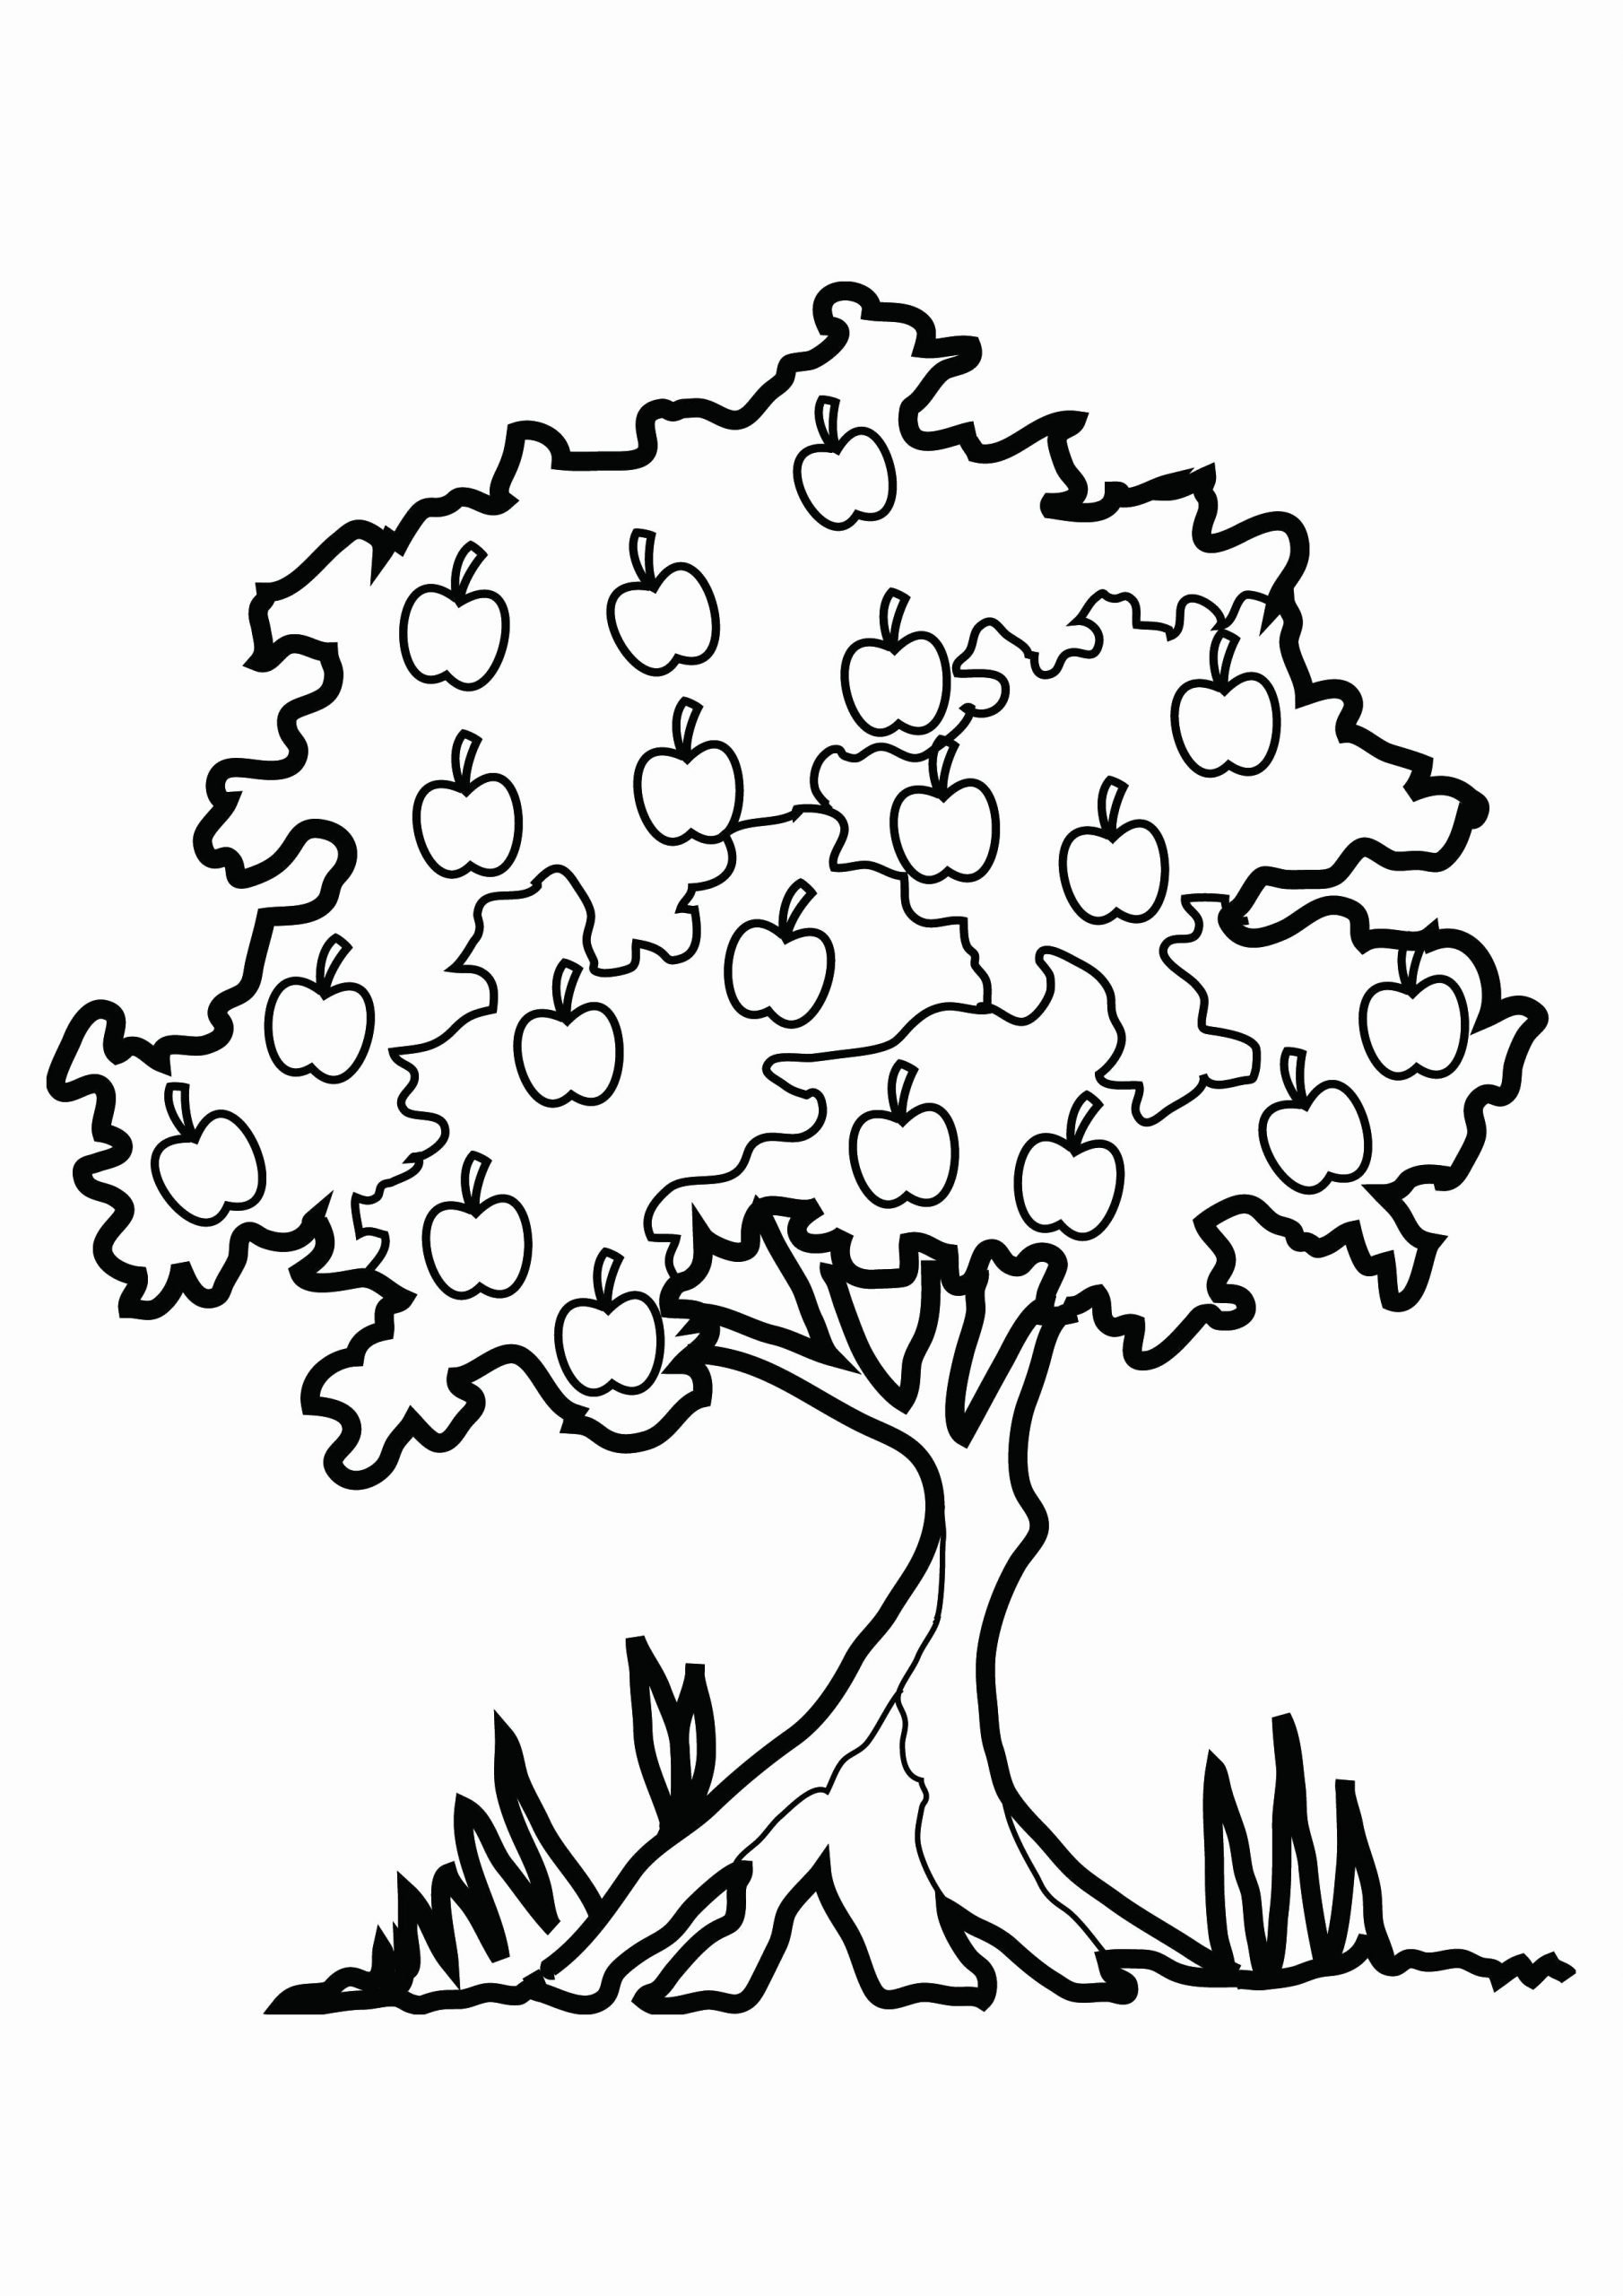 Tree Coloring Worksheets for Preschoolers Inspirational Free Printable Tree Coloring Pages for Kids